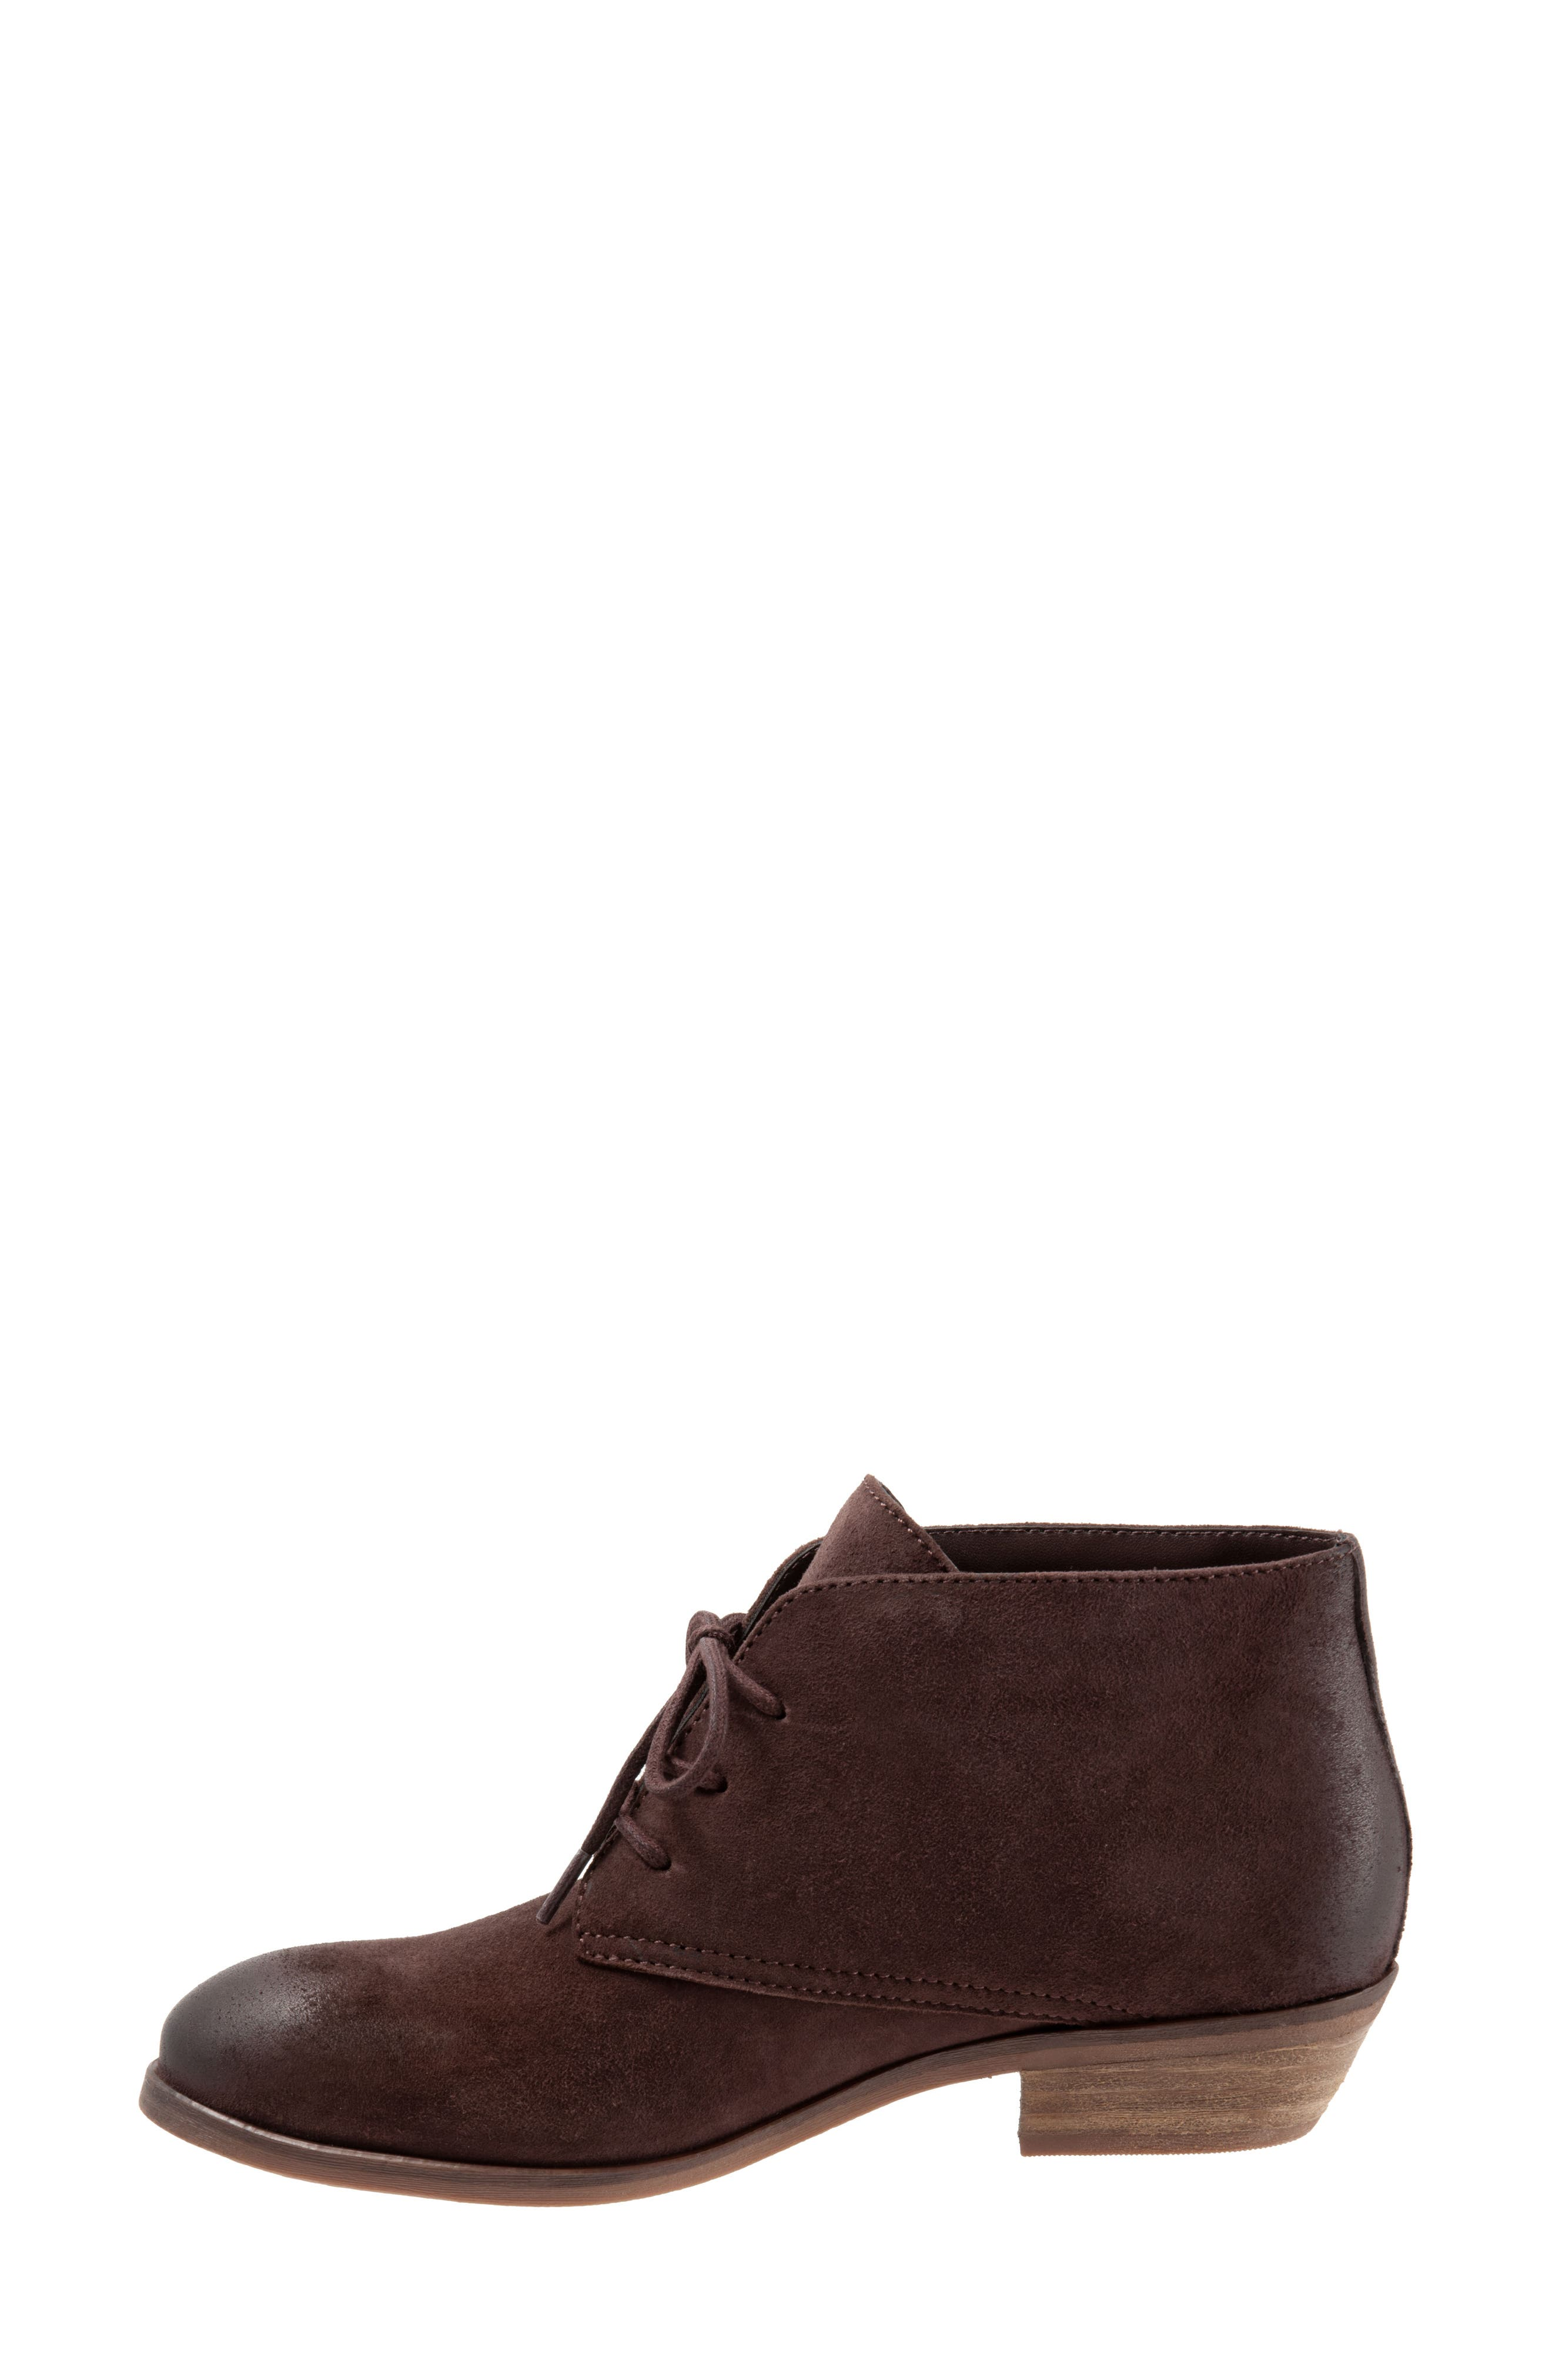 'Ramsey' Chukka Boot,                             Alternate thumbnail 8, color,                             DARK BROWN LEATHER